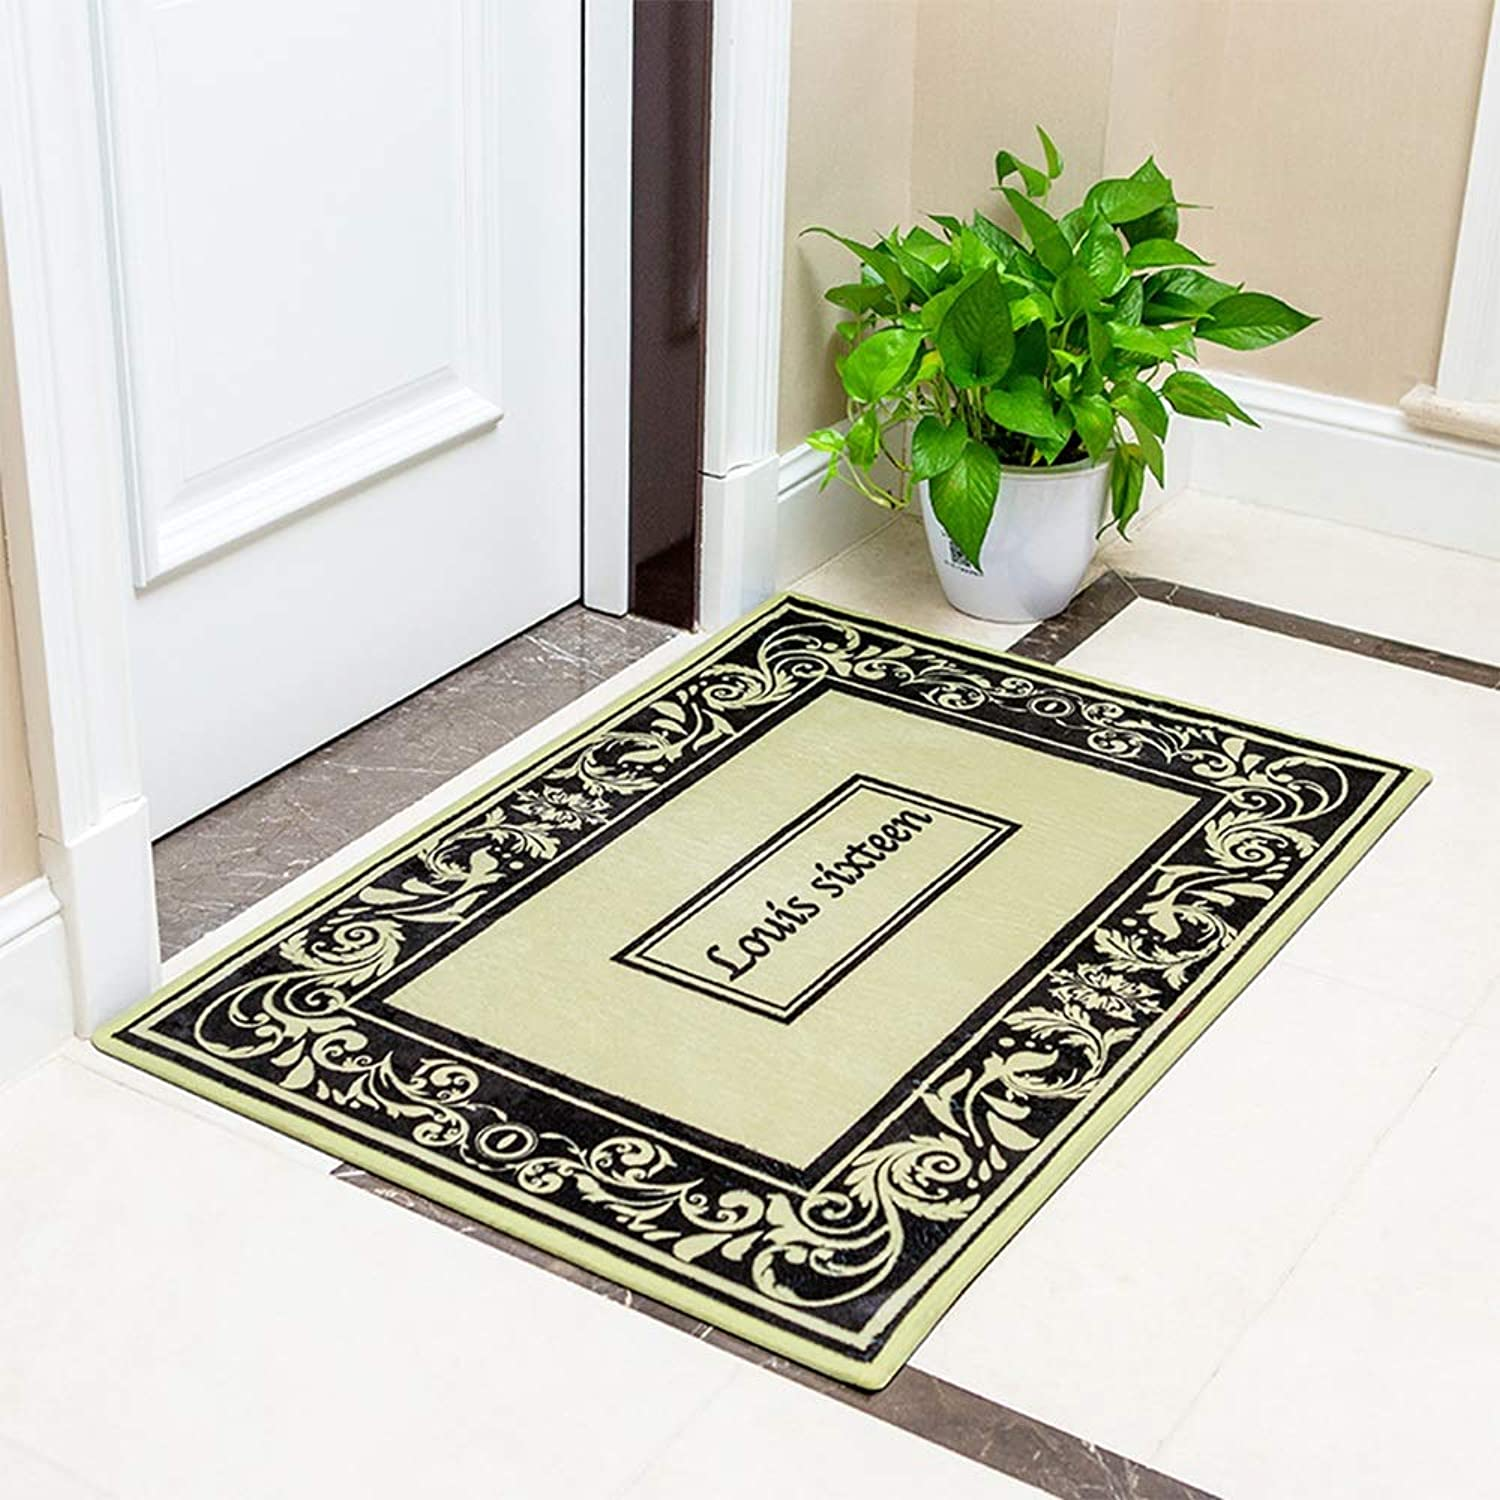 DDSS Door mat Floor mat - Flannel, Absorbent Non-Slip, Soft and Thick, Home Kitchen Bedroom Bathroom Absorbent mat Bathroom Door mats - 5 colors 2 (color   E, Size   50  80CM)